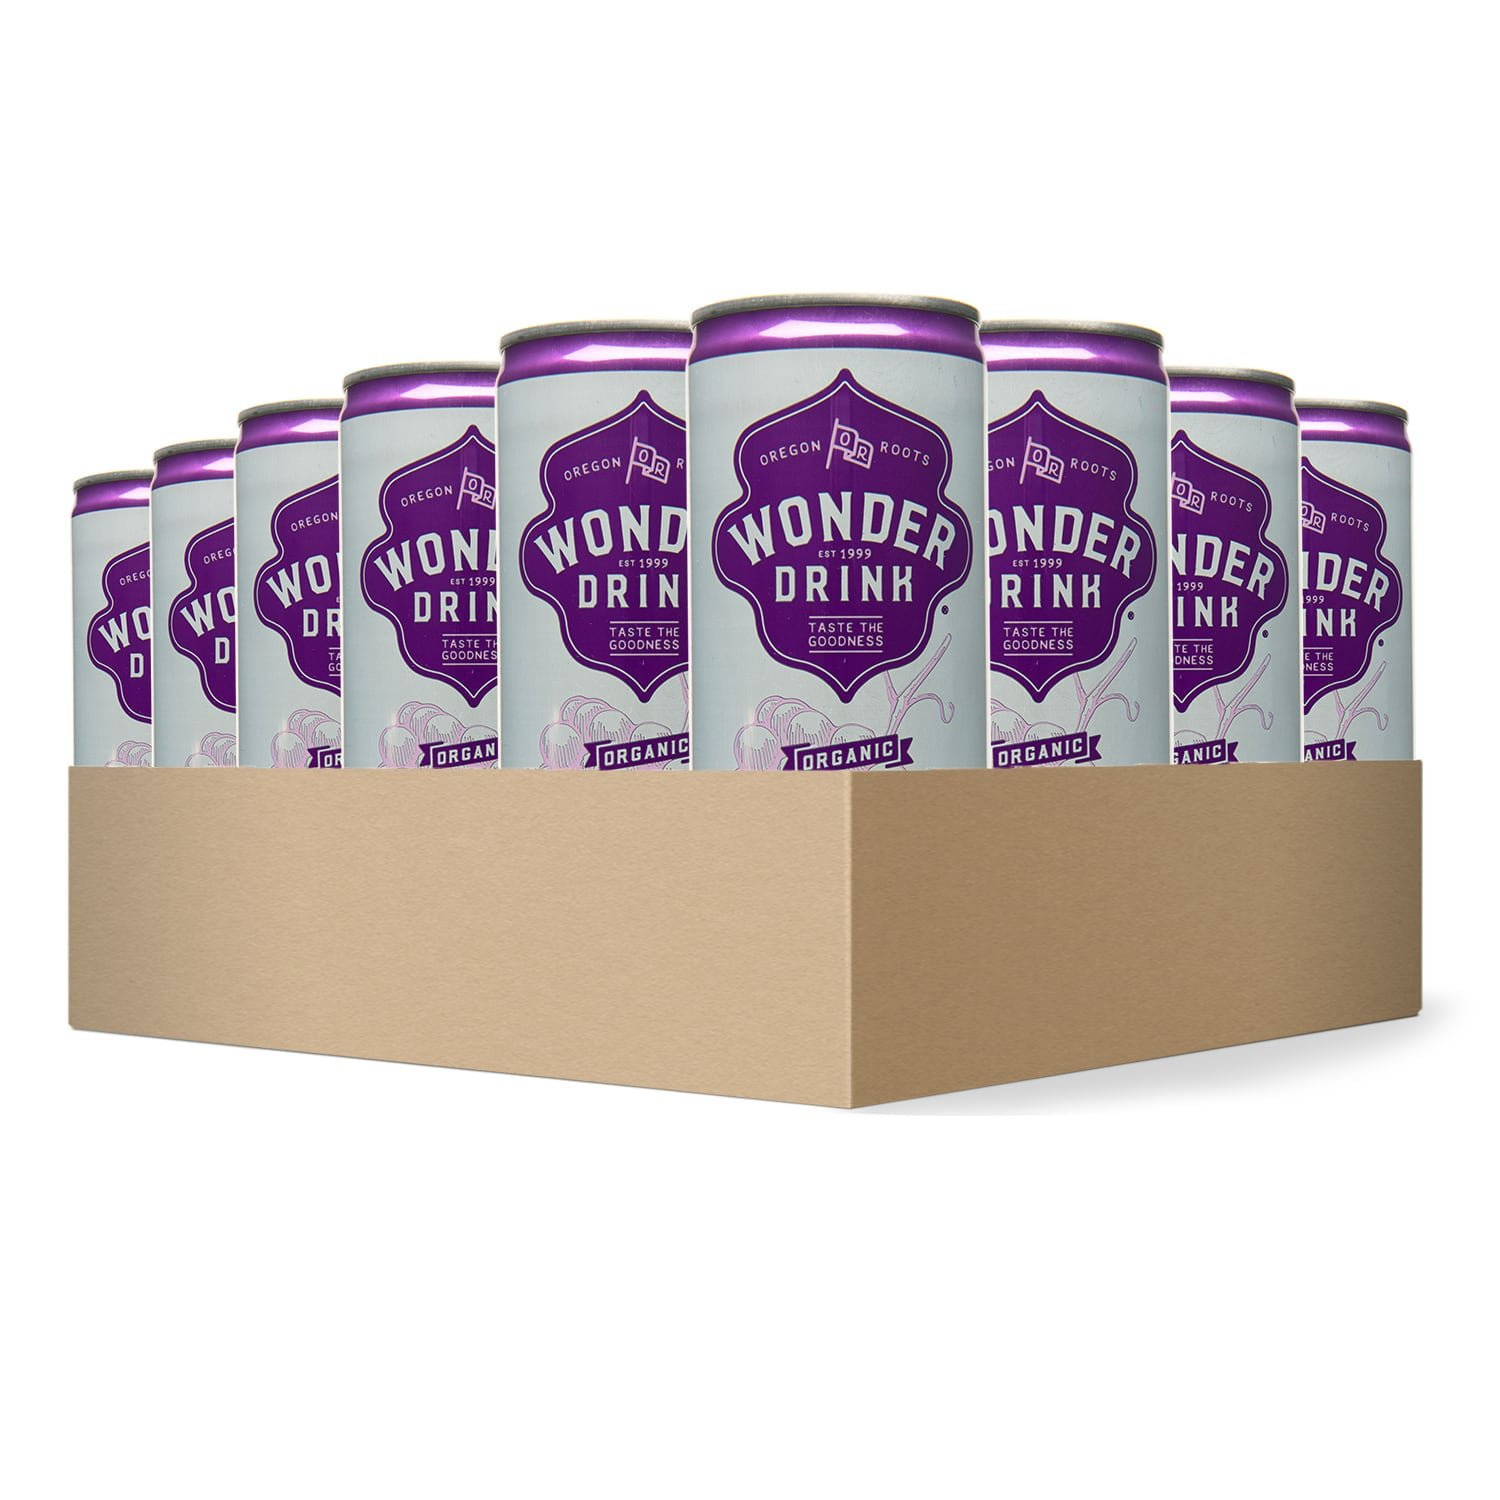 Wonder Drink Kombucha, Organic Grape Sparkling Fermented Tea, 8.4oz Can (Pack of 24) by Kombucha Wonder Drink